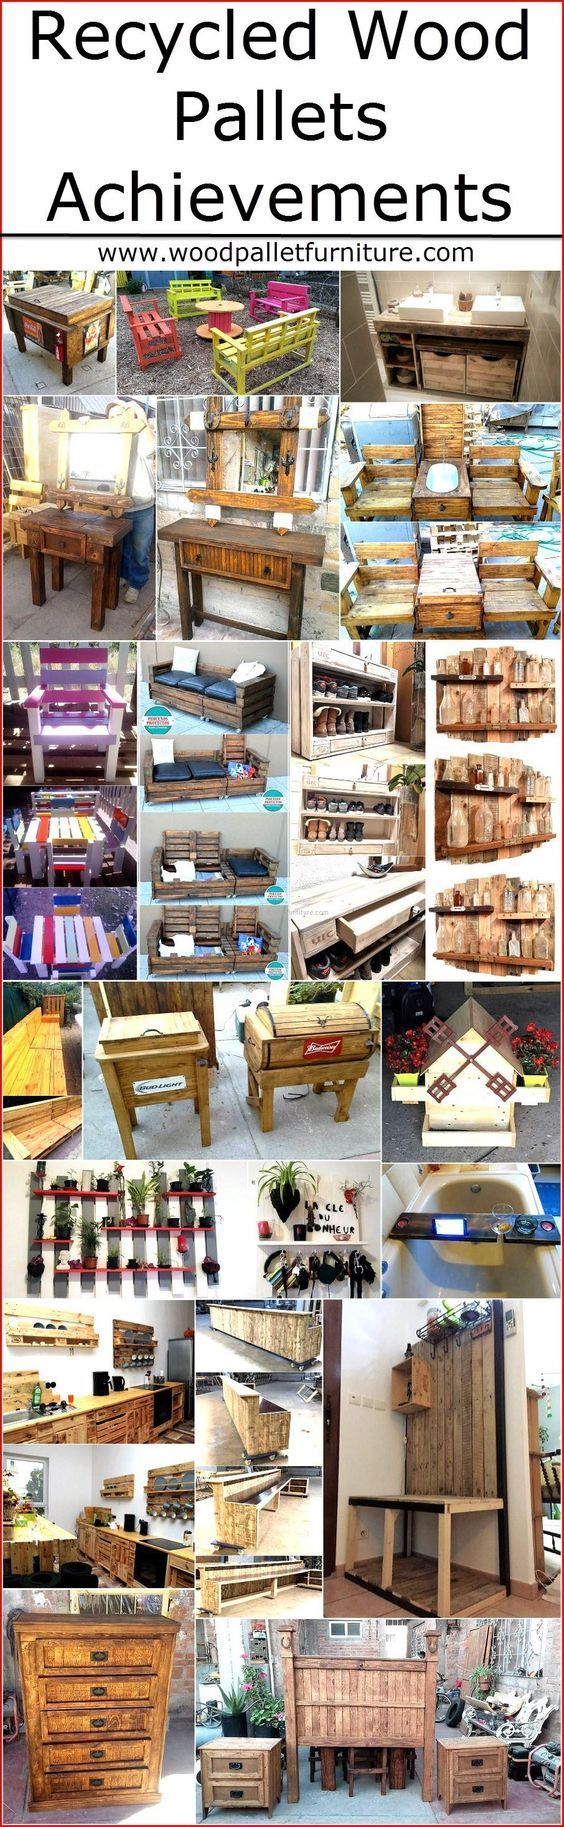 Reshaping the wood pallets is a perfect time pass activity for those who want to spend their free time in a way that benefit them, so the recycled wooden pallet achievements provides benefit by giving the items that are useful in many ways and also helps in saving money if the person needs furniture for the home. We are here with some great wood pallets ideas and achievements that you will love to copy: